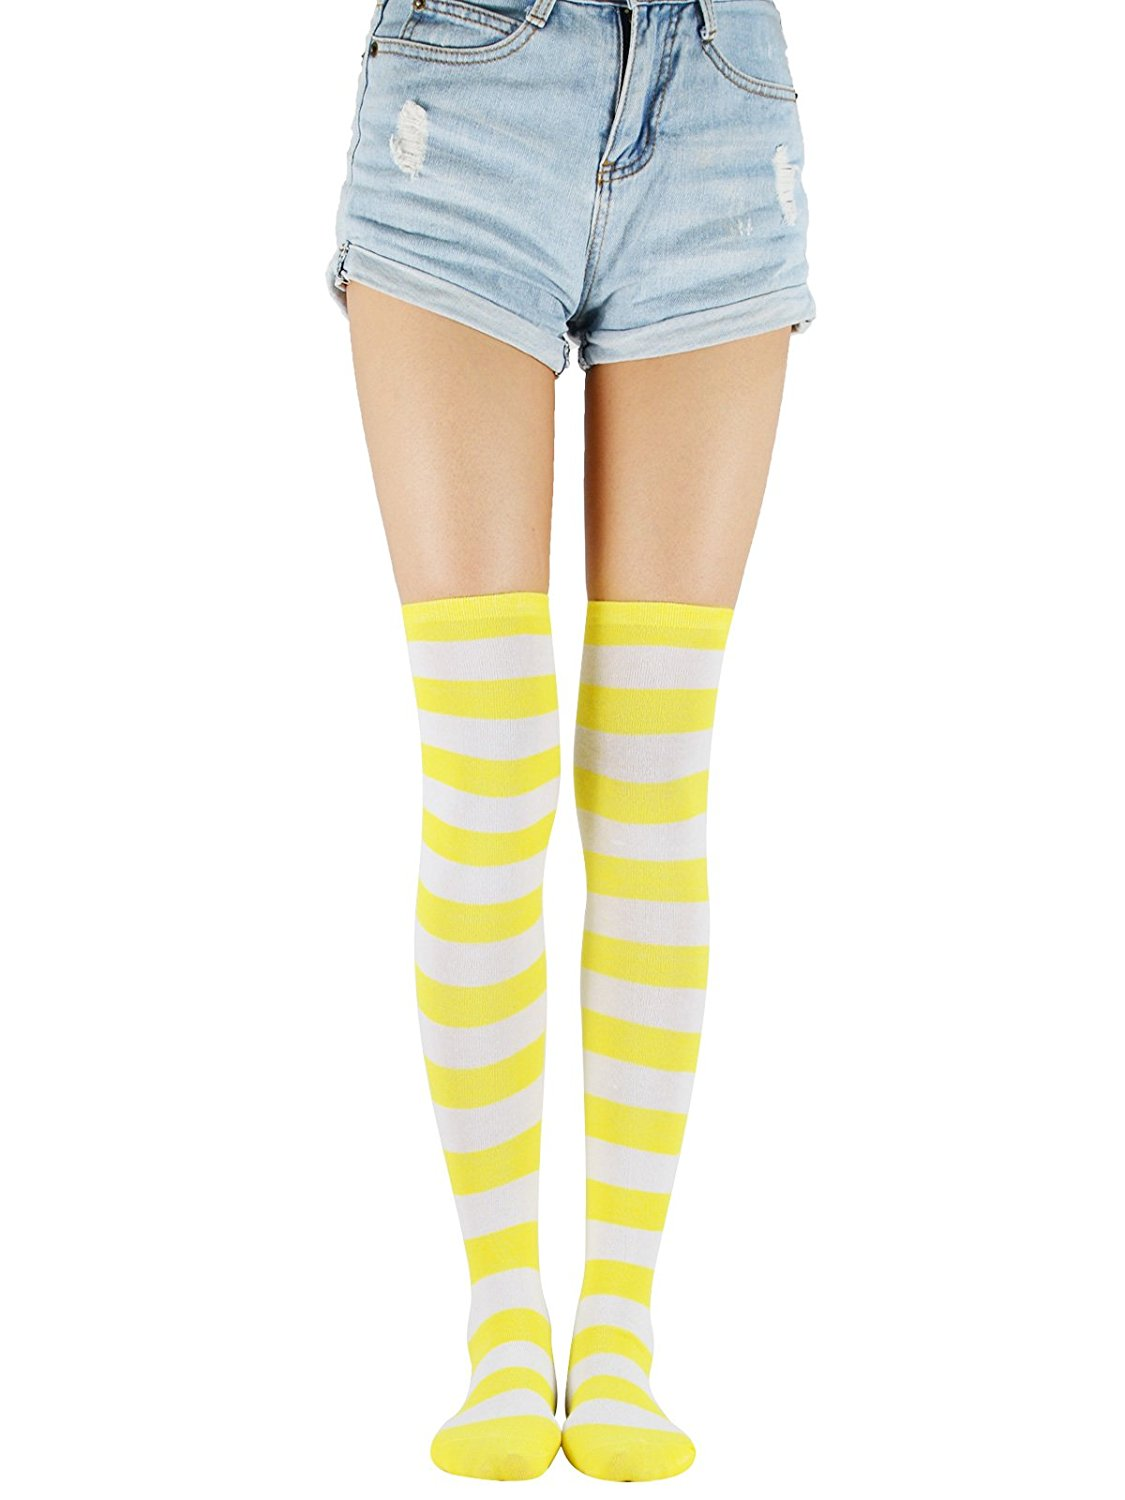 9db337568 Over Knee Long Tube Socks Casual Striped Thigh High Tights Athletic  Stockings Stretchy One Pair Skirt